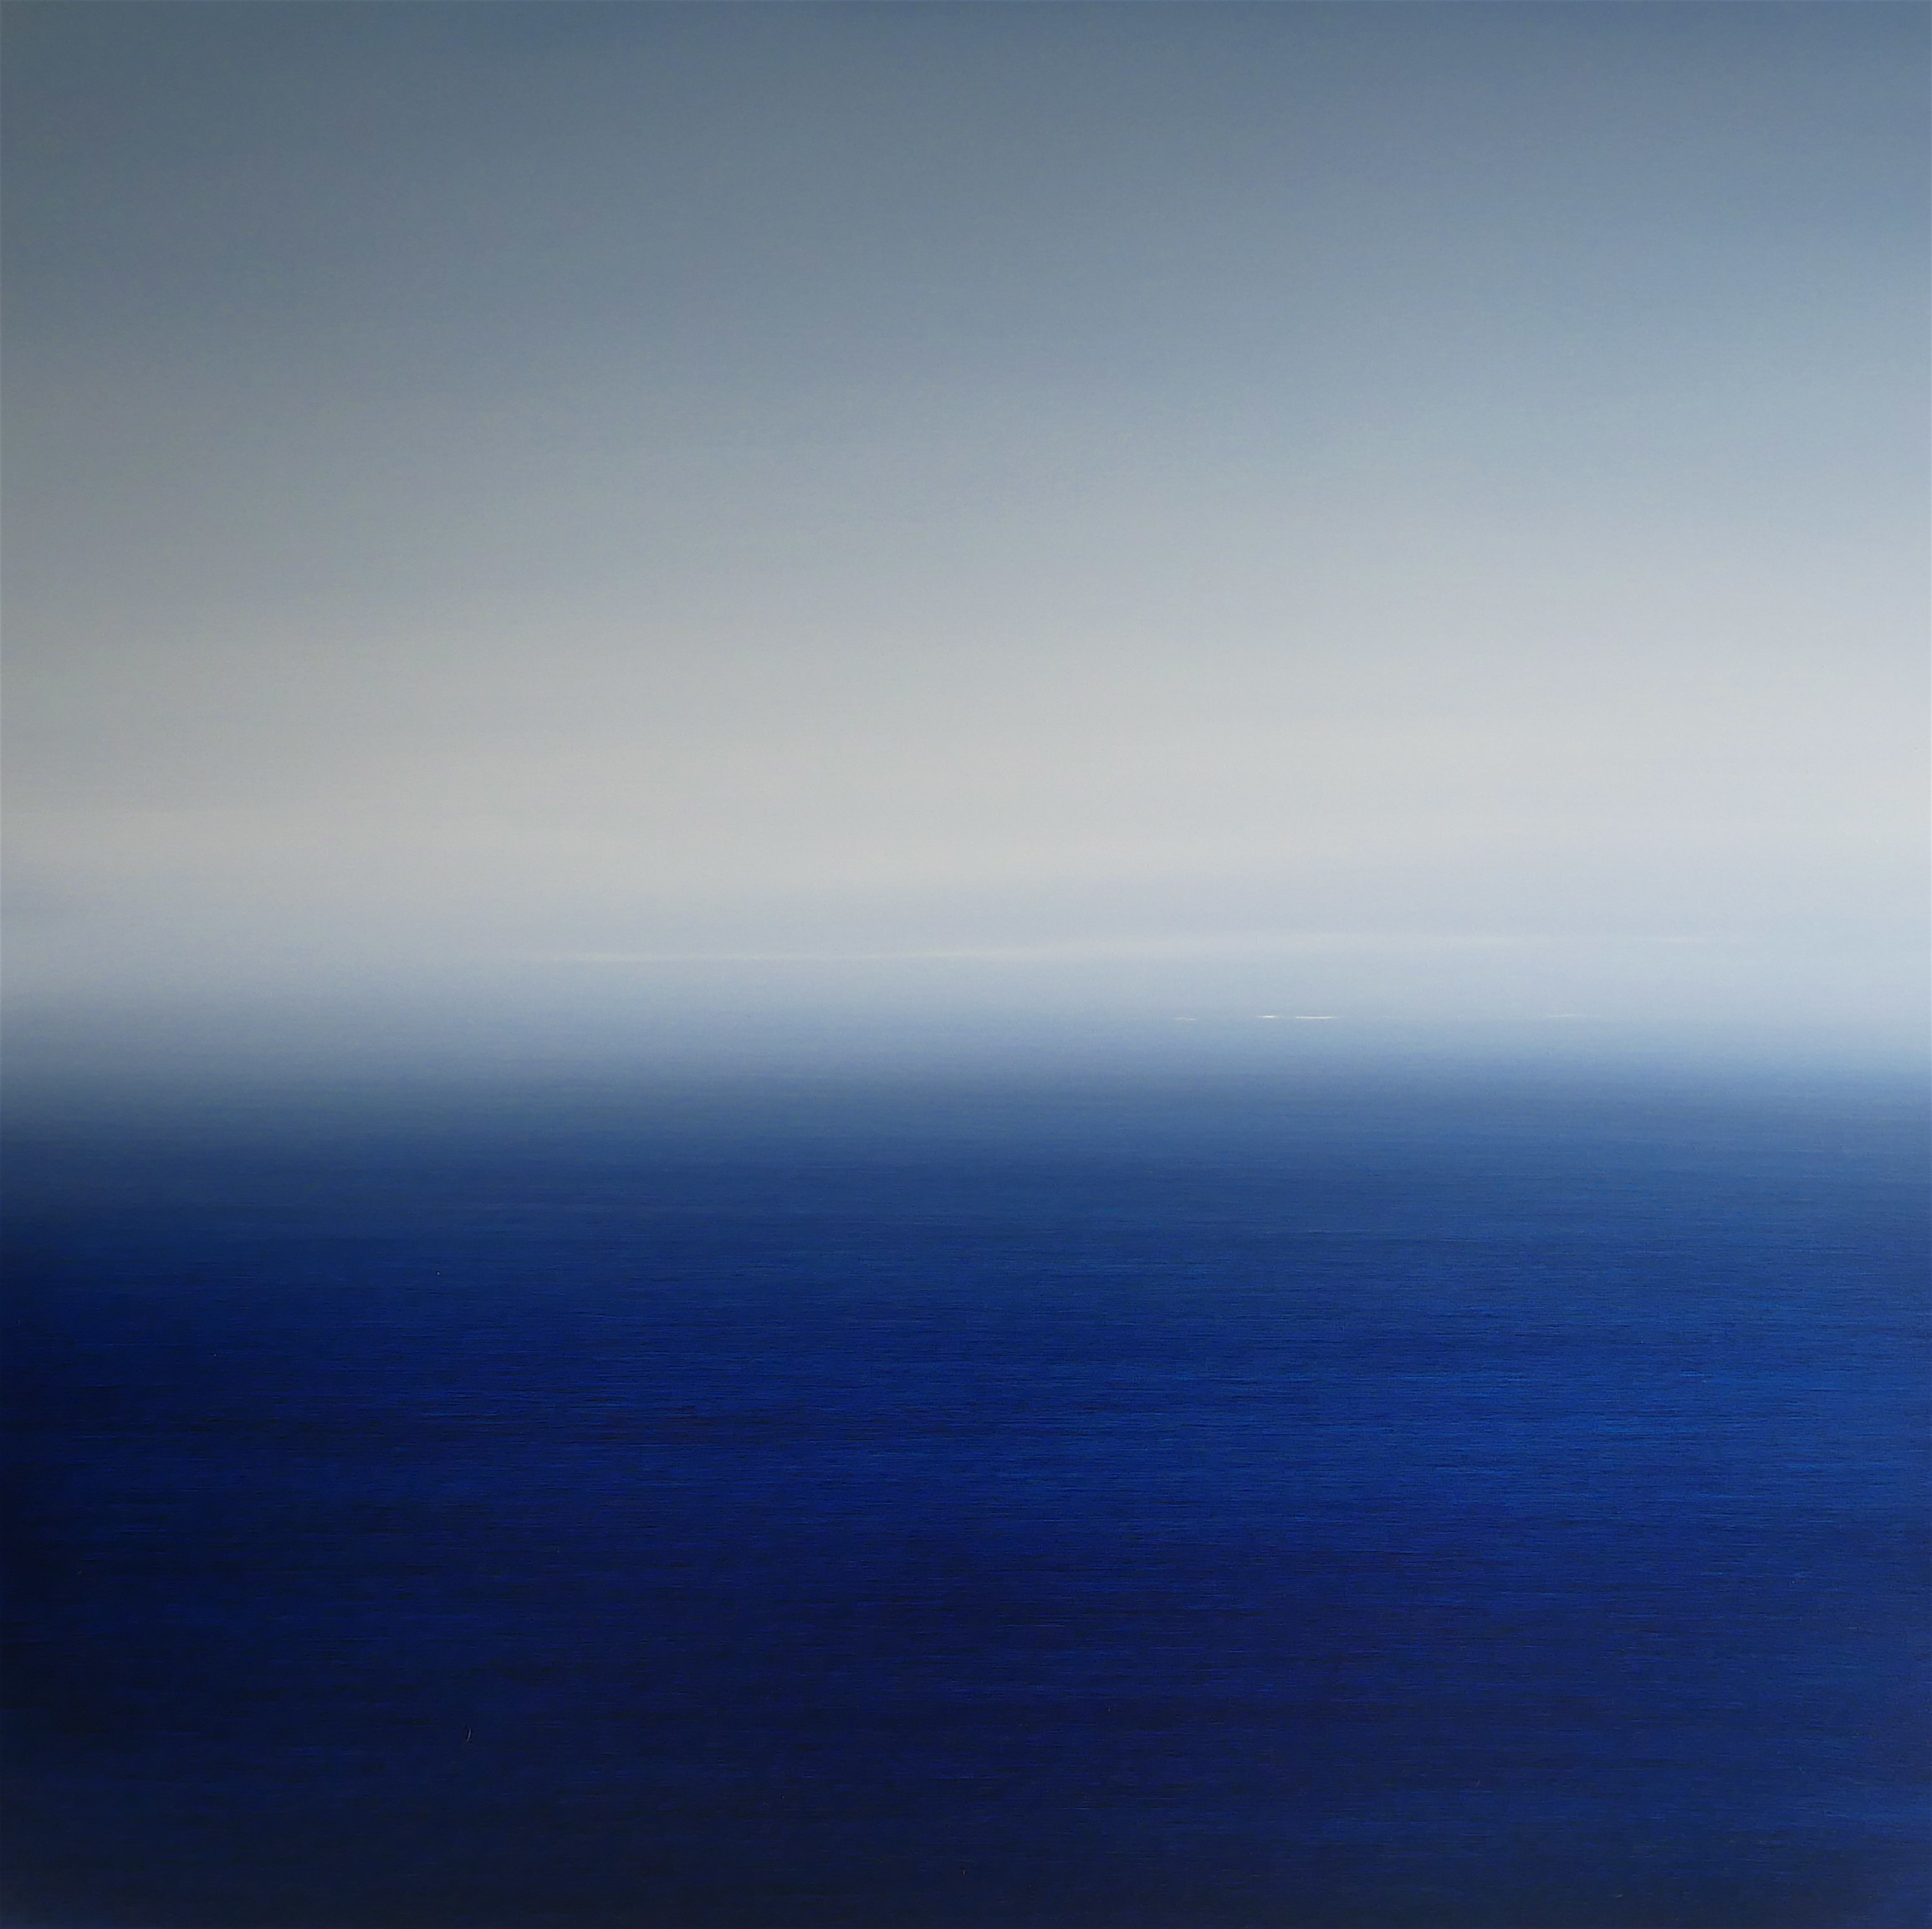 "<span class=""link fancybox-details-link""><a href=""/artists/78-martyn-perryman/works/6283-martyn-perryman-distant-light-st-ives-2019/"">View Detail Page</a></span><div class=""artist""><strong>Martyn Perryman</strong></div> <div class=""title""><em>Distant Light, St Ives</em>, 2019</div> <div class=""signed_and_dated"">signed on the reverse</div> <div class=""medium"">Oil on Canvas</div> <div class=""dimensions"">90 x 90cm</div><div class=""copyright_line"">Own Art £121 x 10 months, 0% APR</div>"